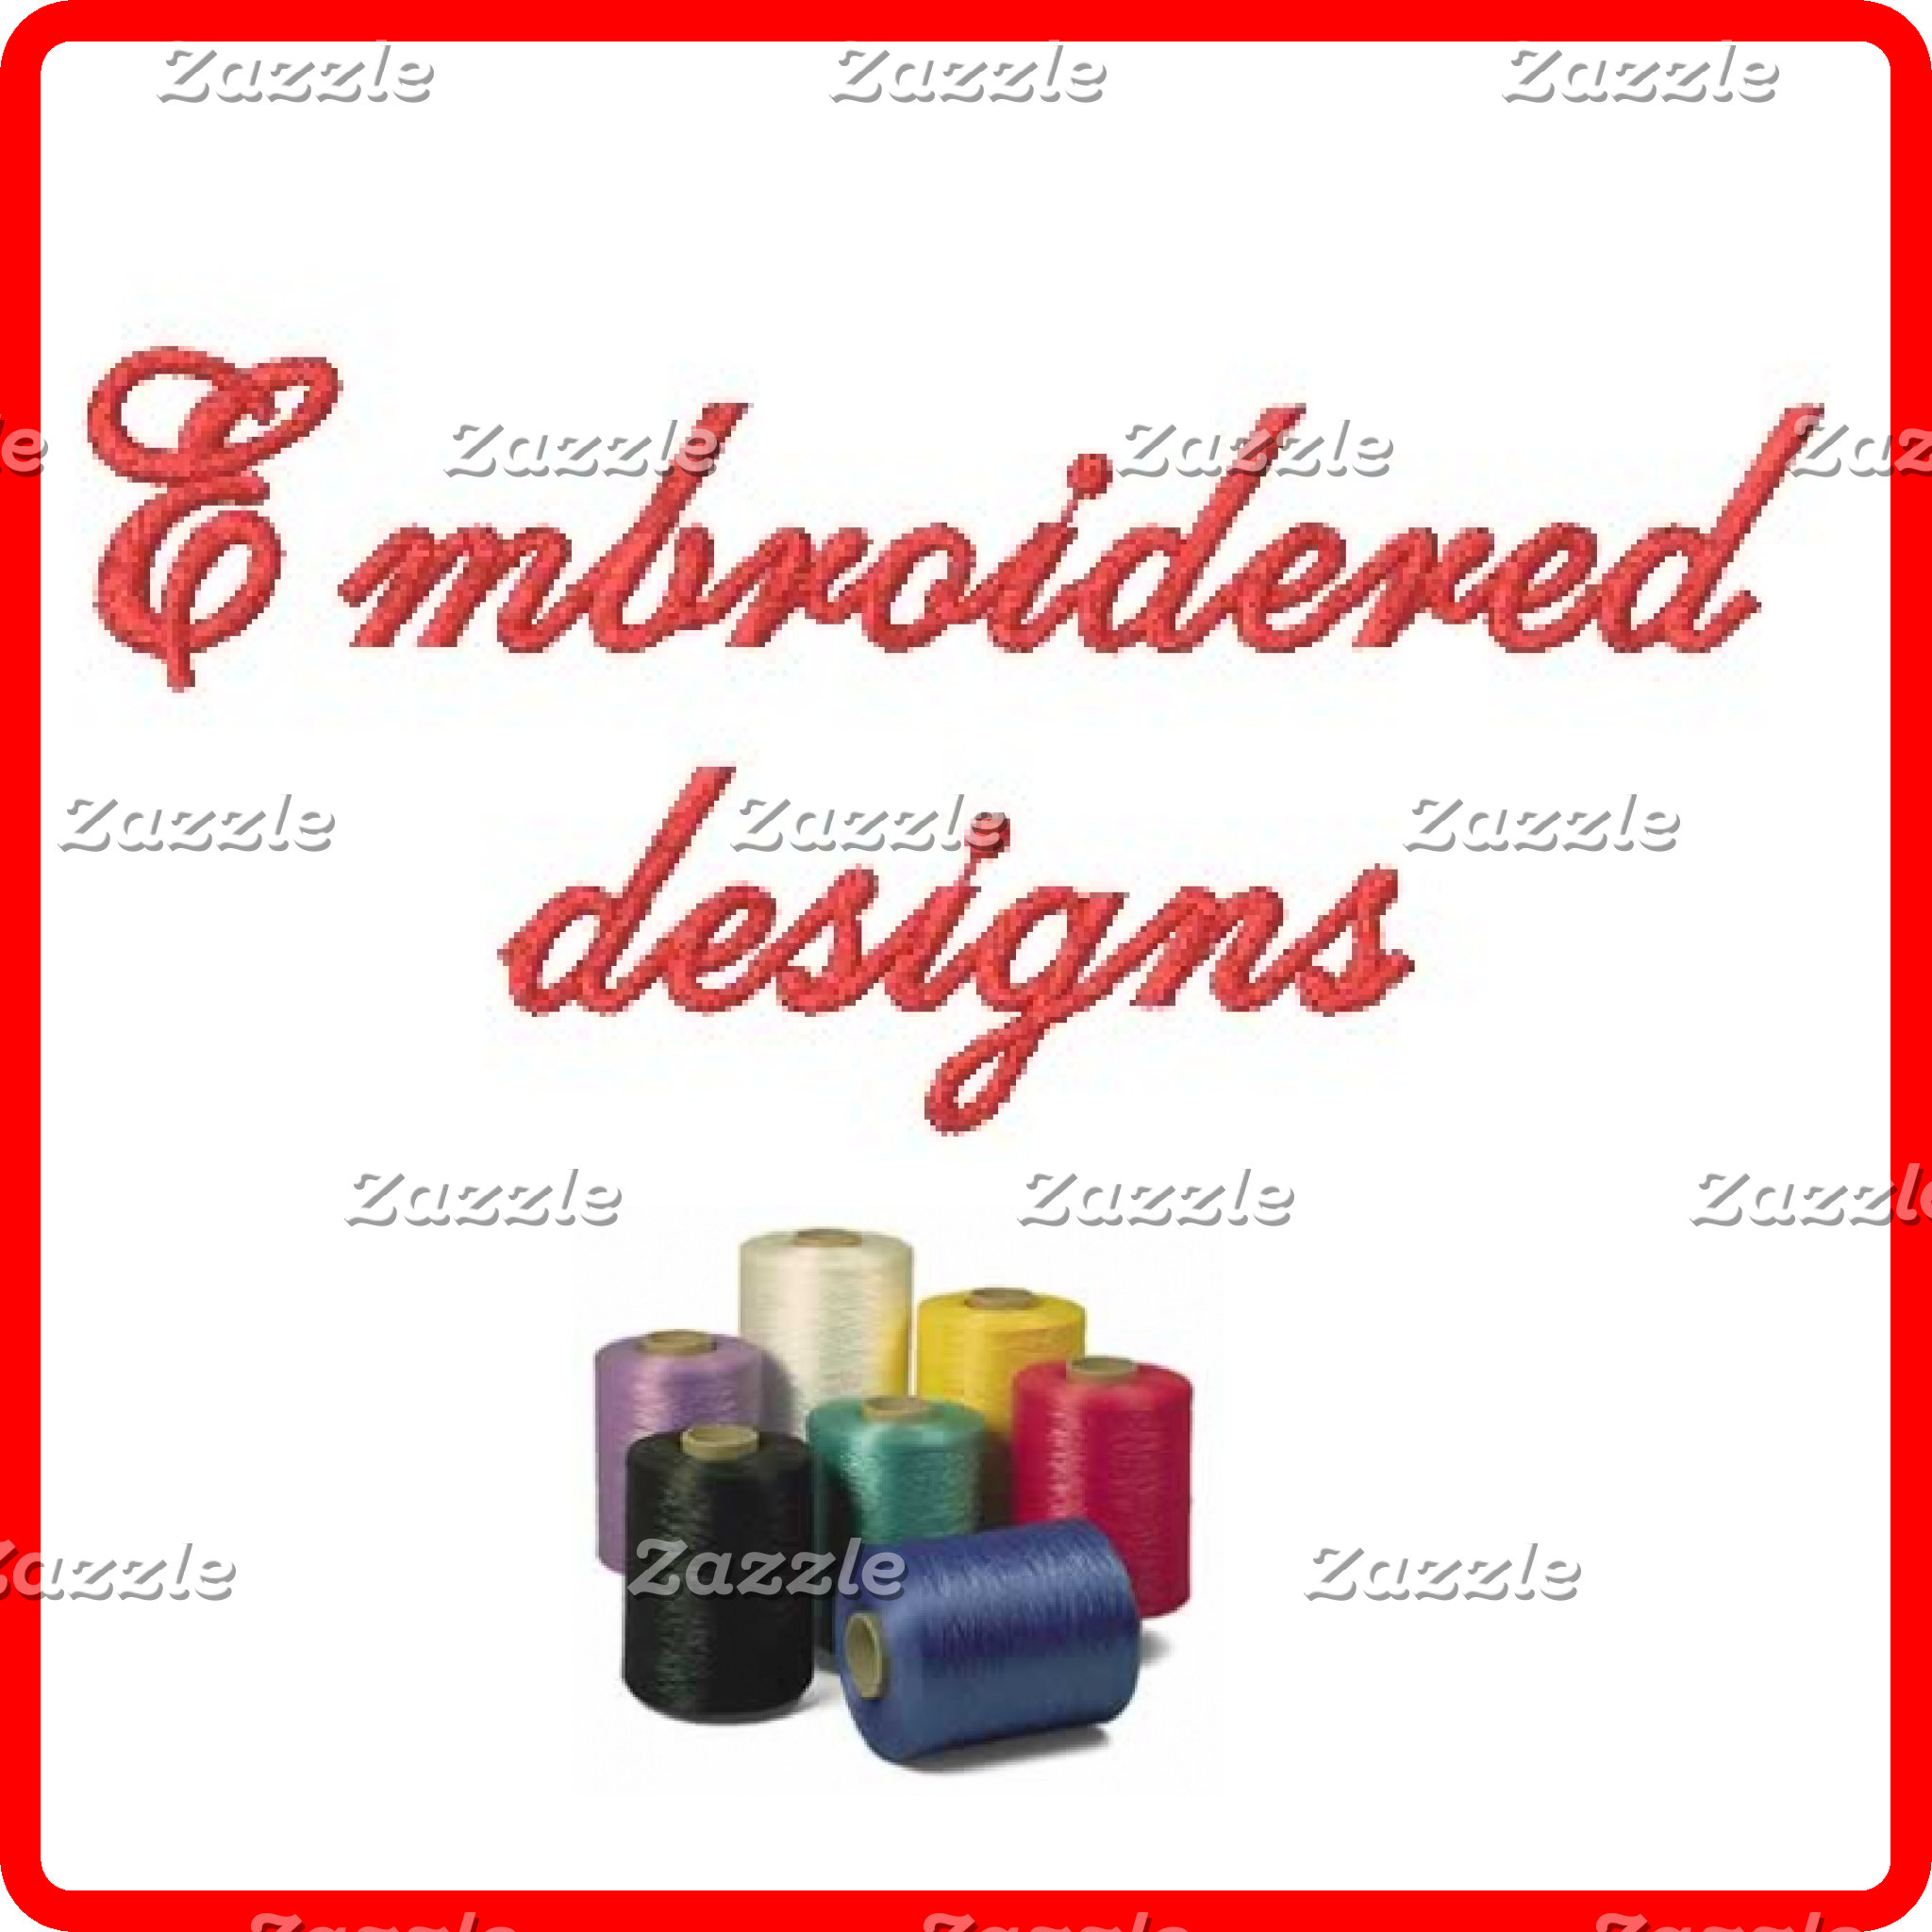 Embroidered designs